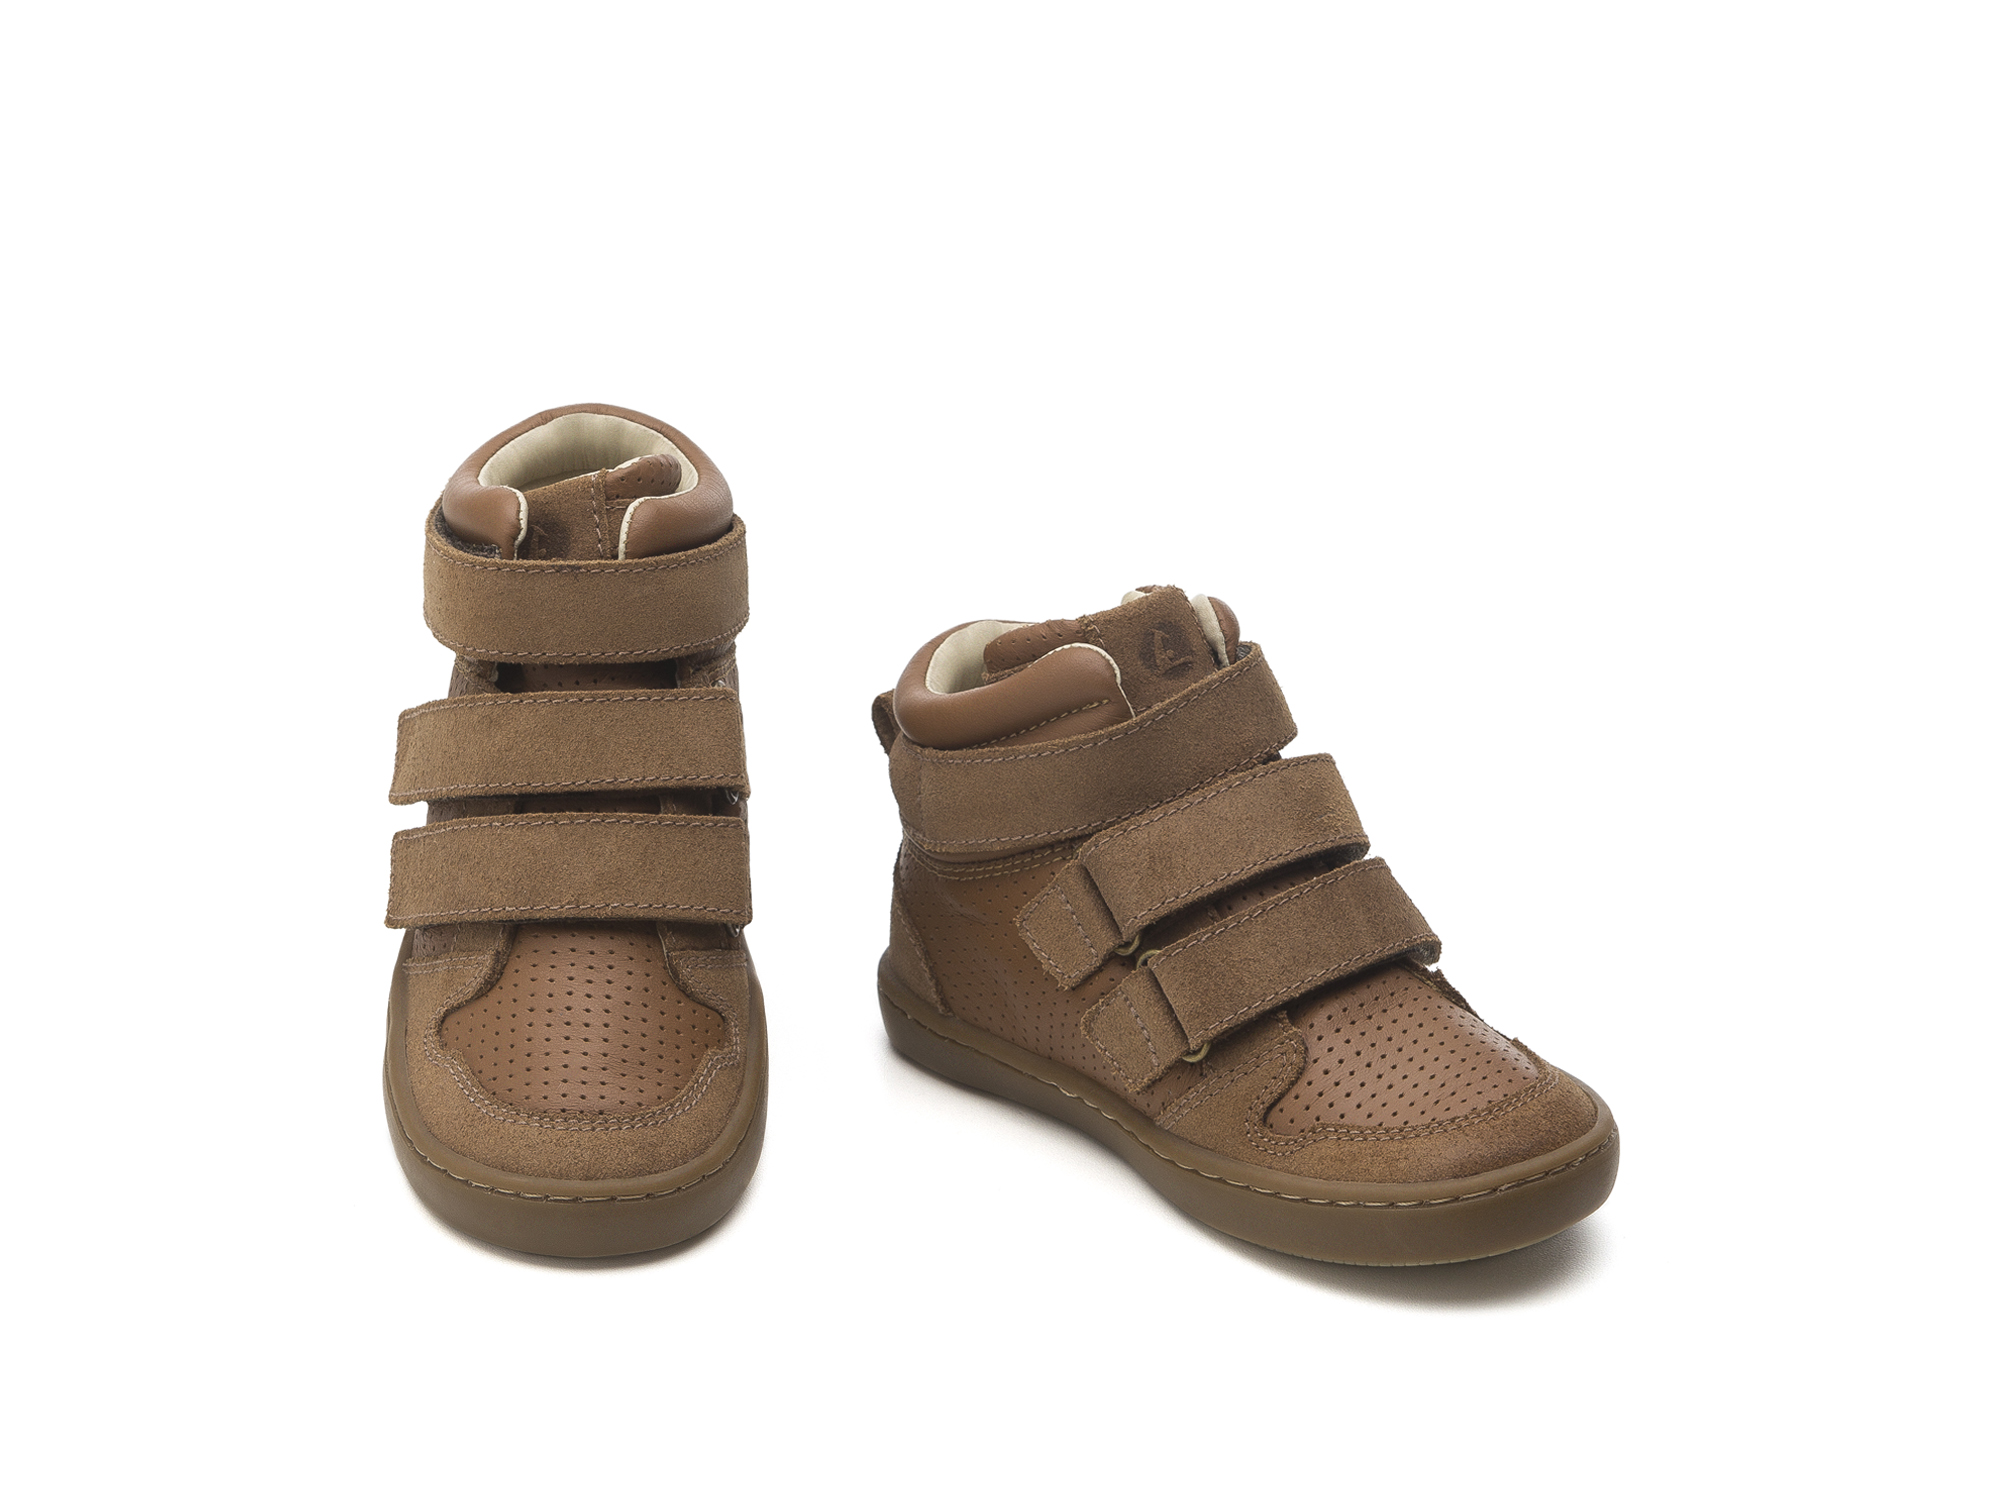 Bota Little Edge Rust Suede/ Cacau Holes Toddler 2 à 4 anos - 2